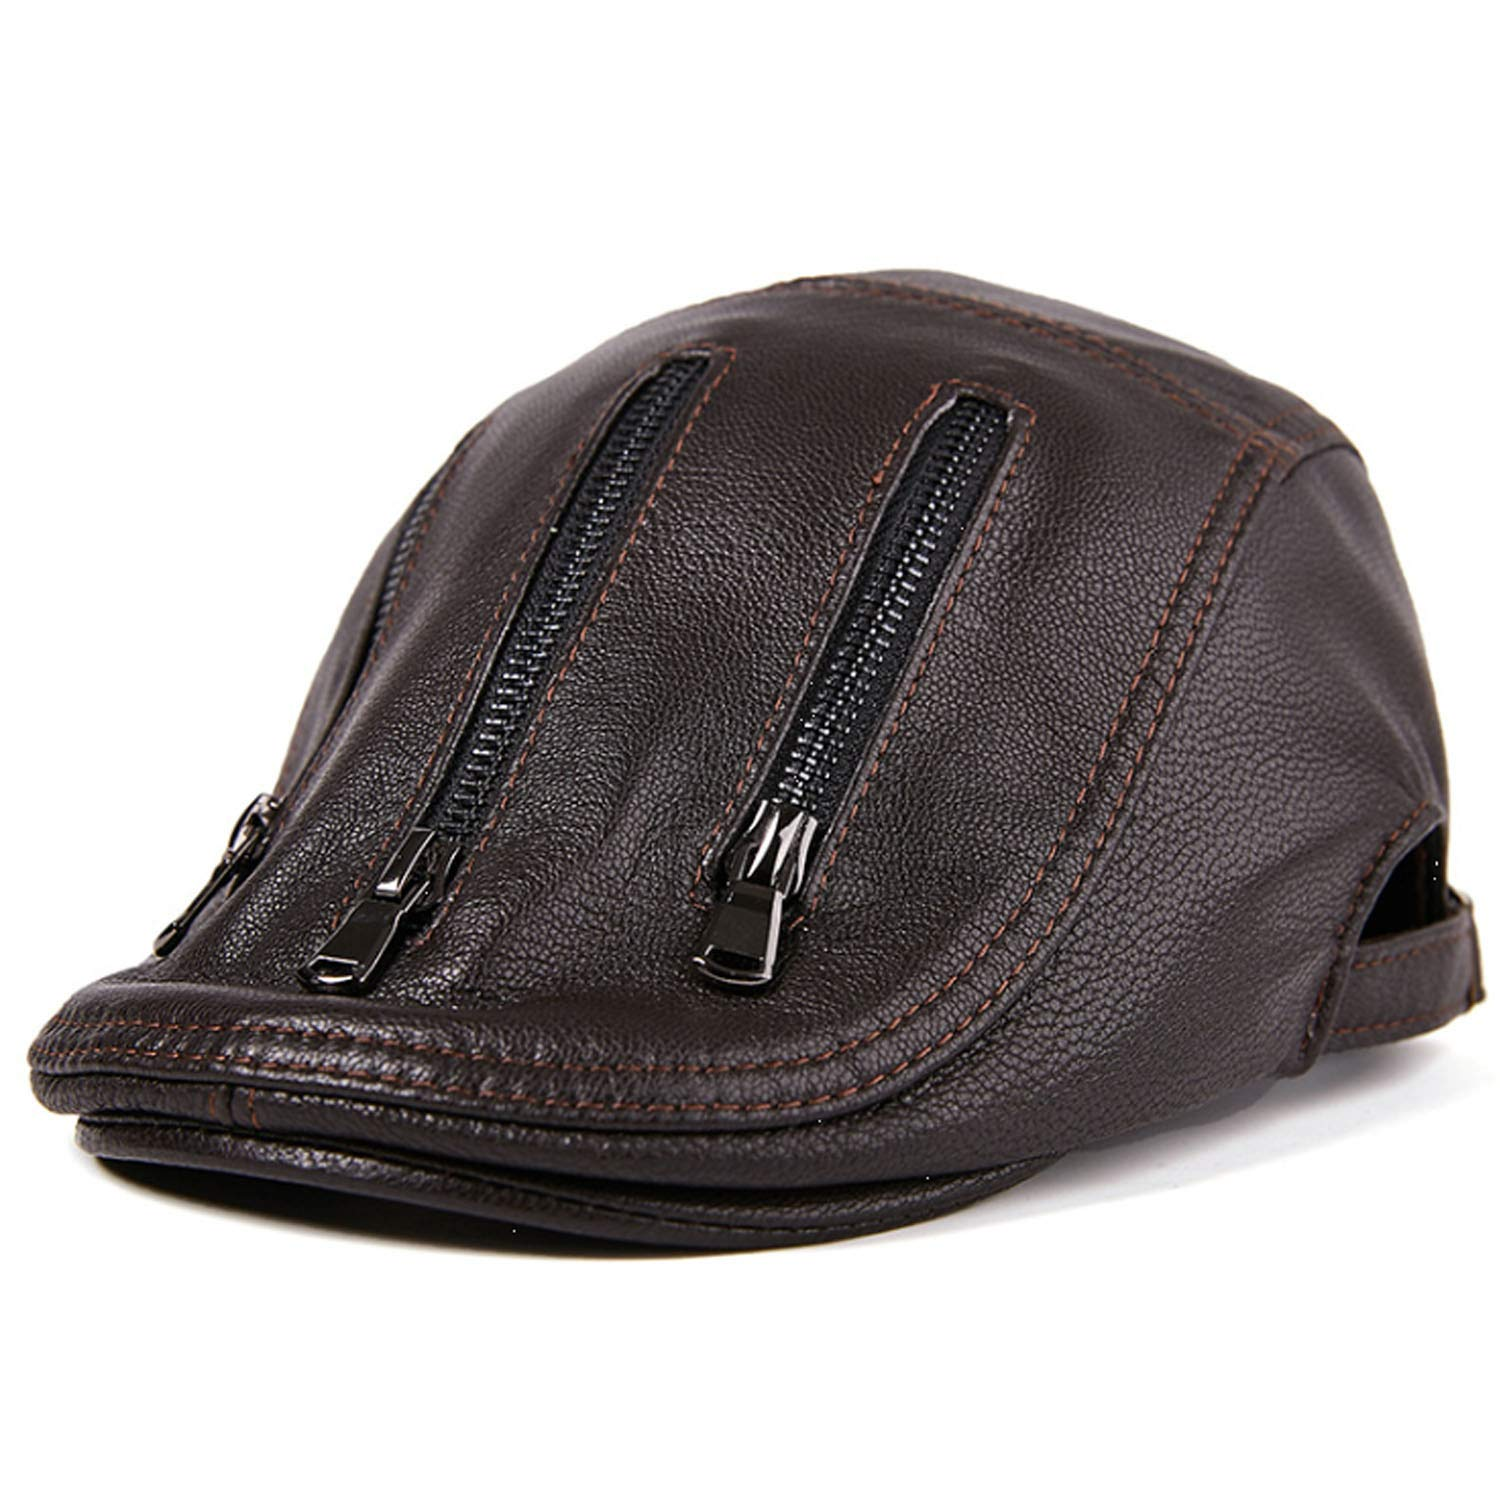 MUMUWU Mens Hat Spring Autumn Male Thin Section Leather Beret Baseball Cap Leather Cap Fashion Fashion Winter Color : Black, Size : L